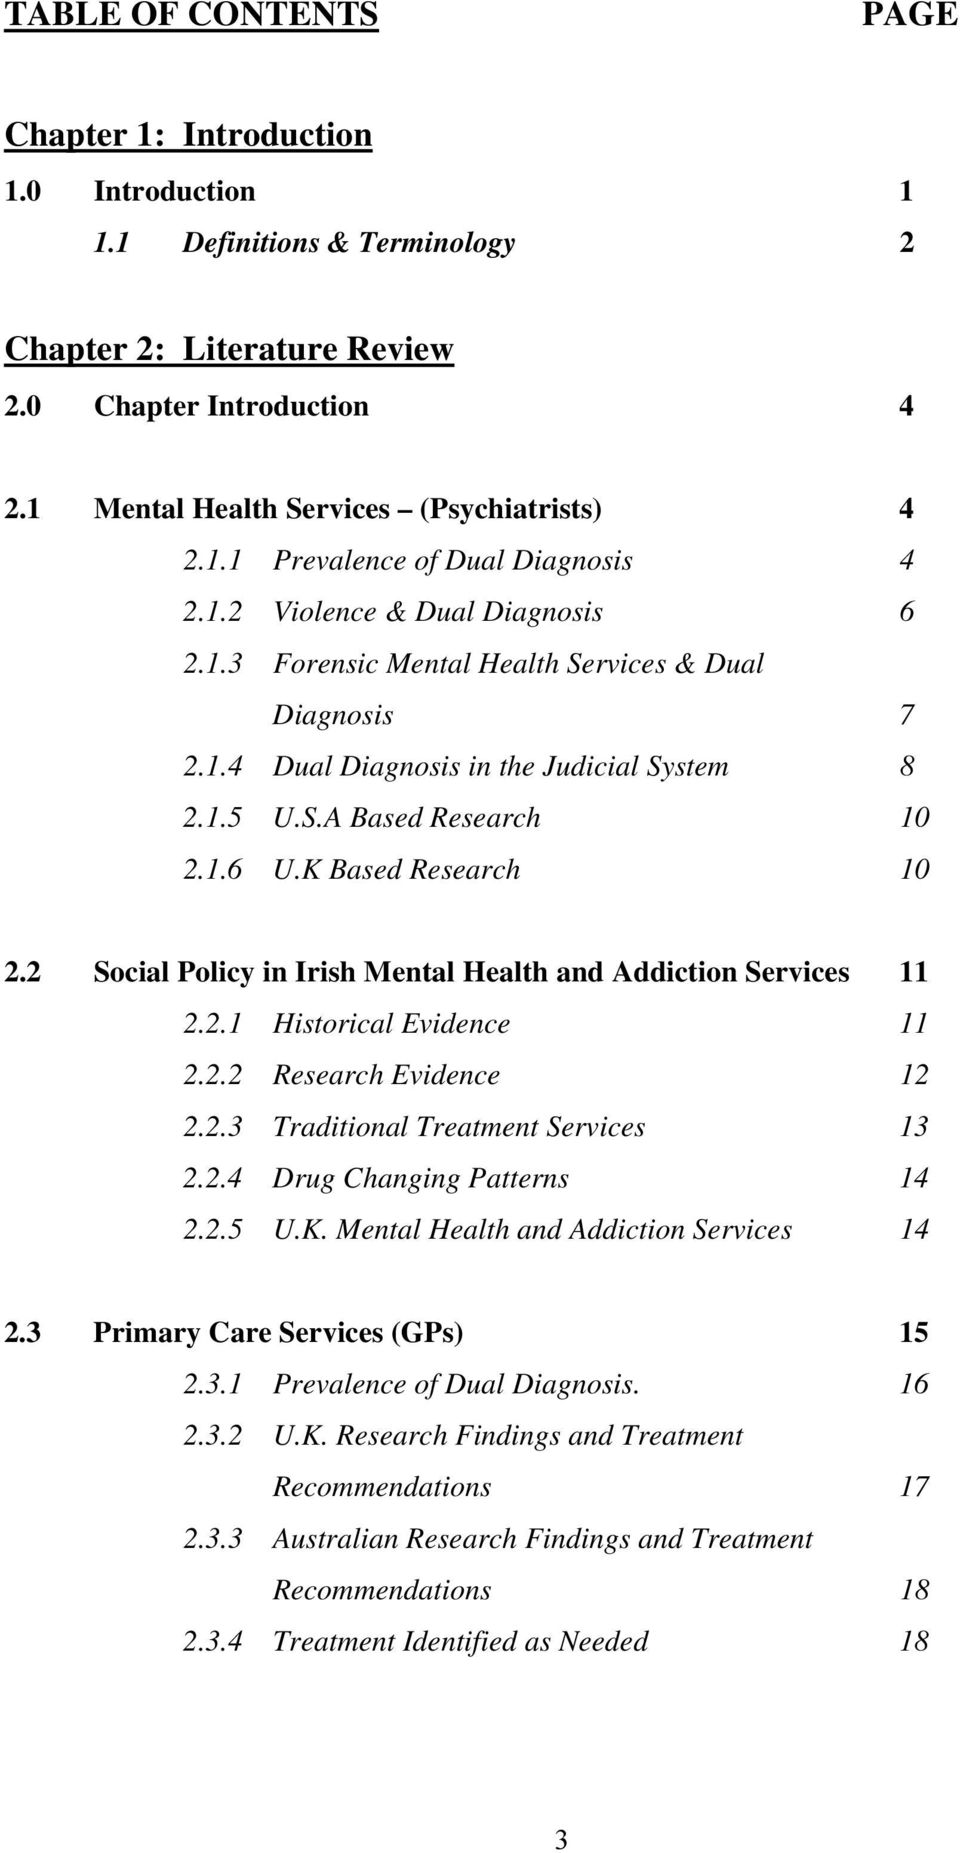 1.5 U.S.A Based Research 10 2.1.6 U.K Based Research 10 2.2 Social Policy in Irish Mental Health and Addiction Services 11 2.2.1 Historical Evidence 11 2.2.2 Research Evidence 12 2.2.3 Traditional Treatment Services 13 2.